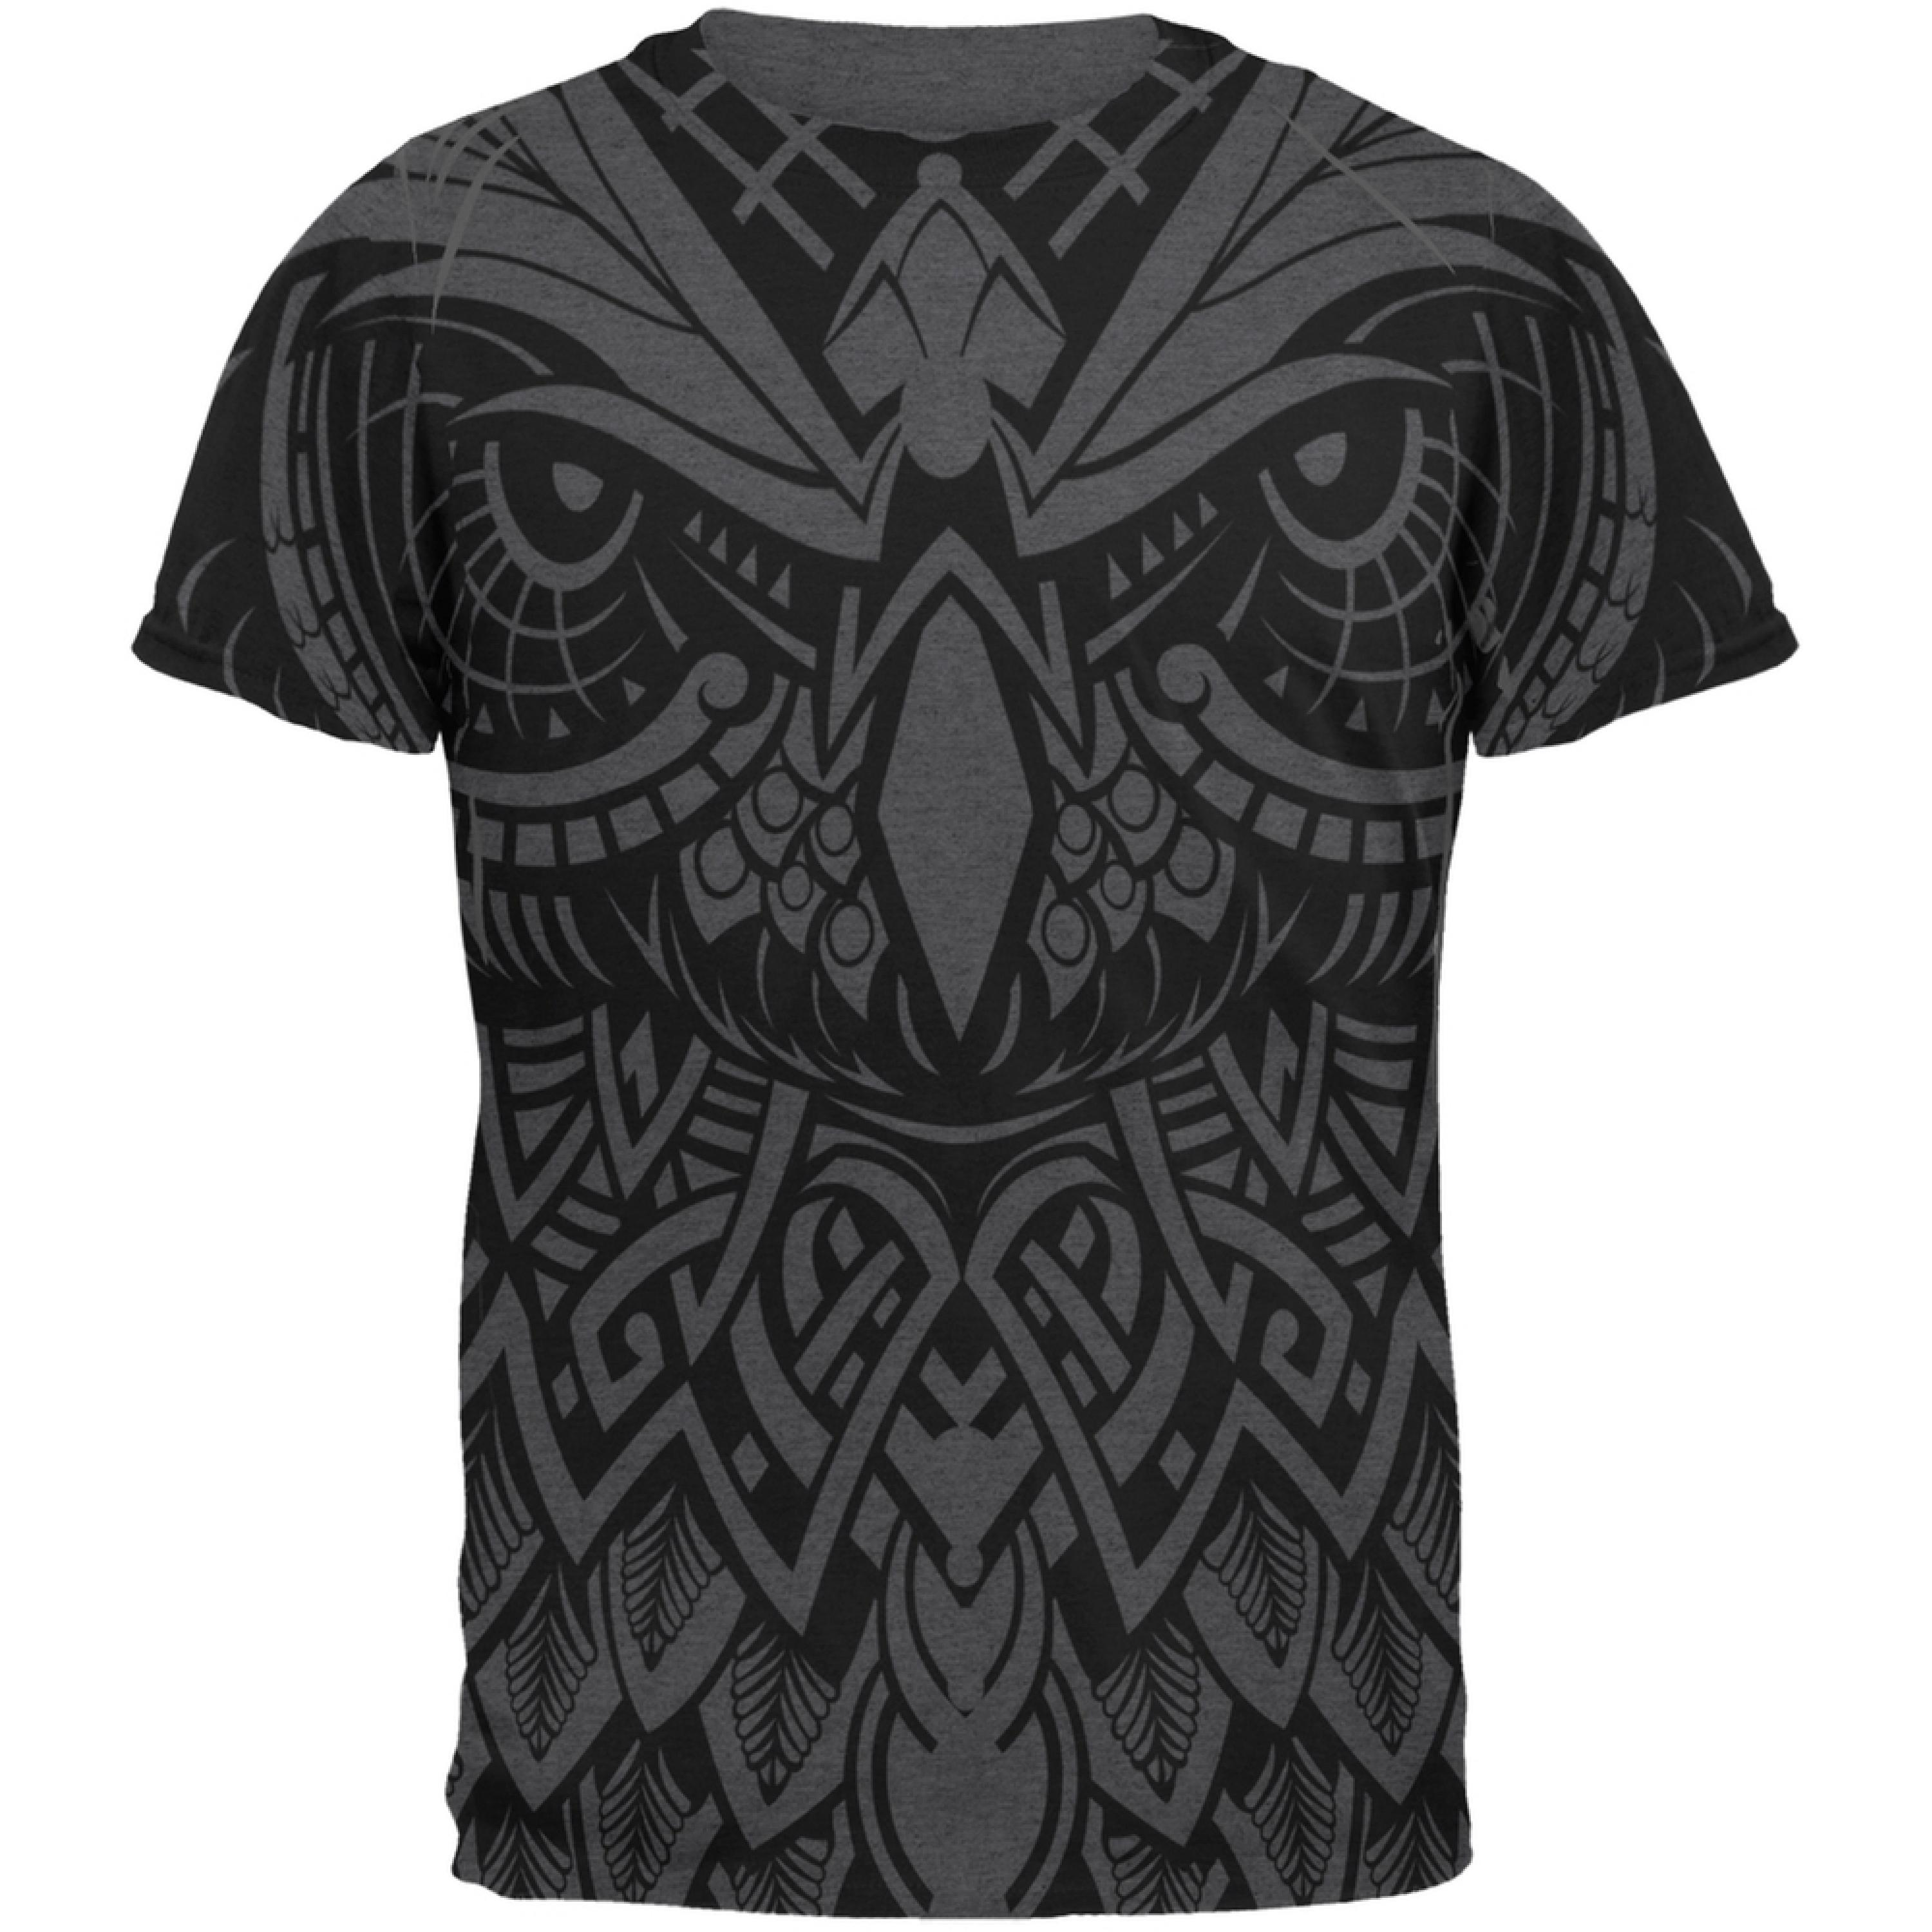 Trippy Owl Outline All Over Dark Heather Adult T-Shirt